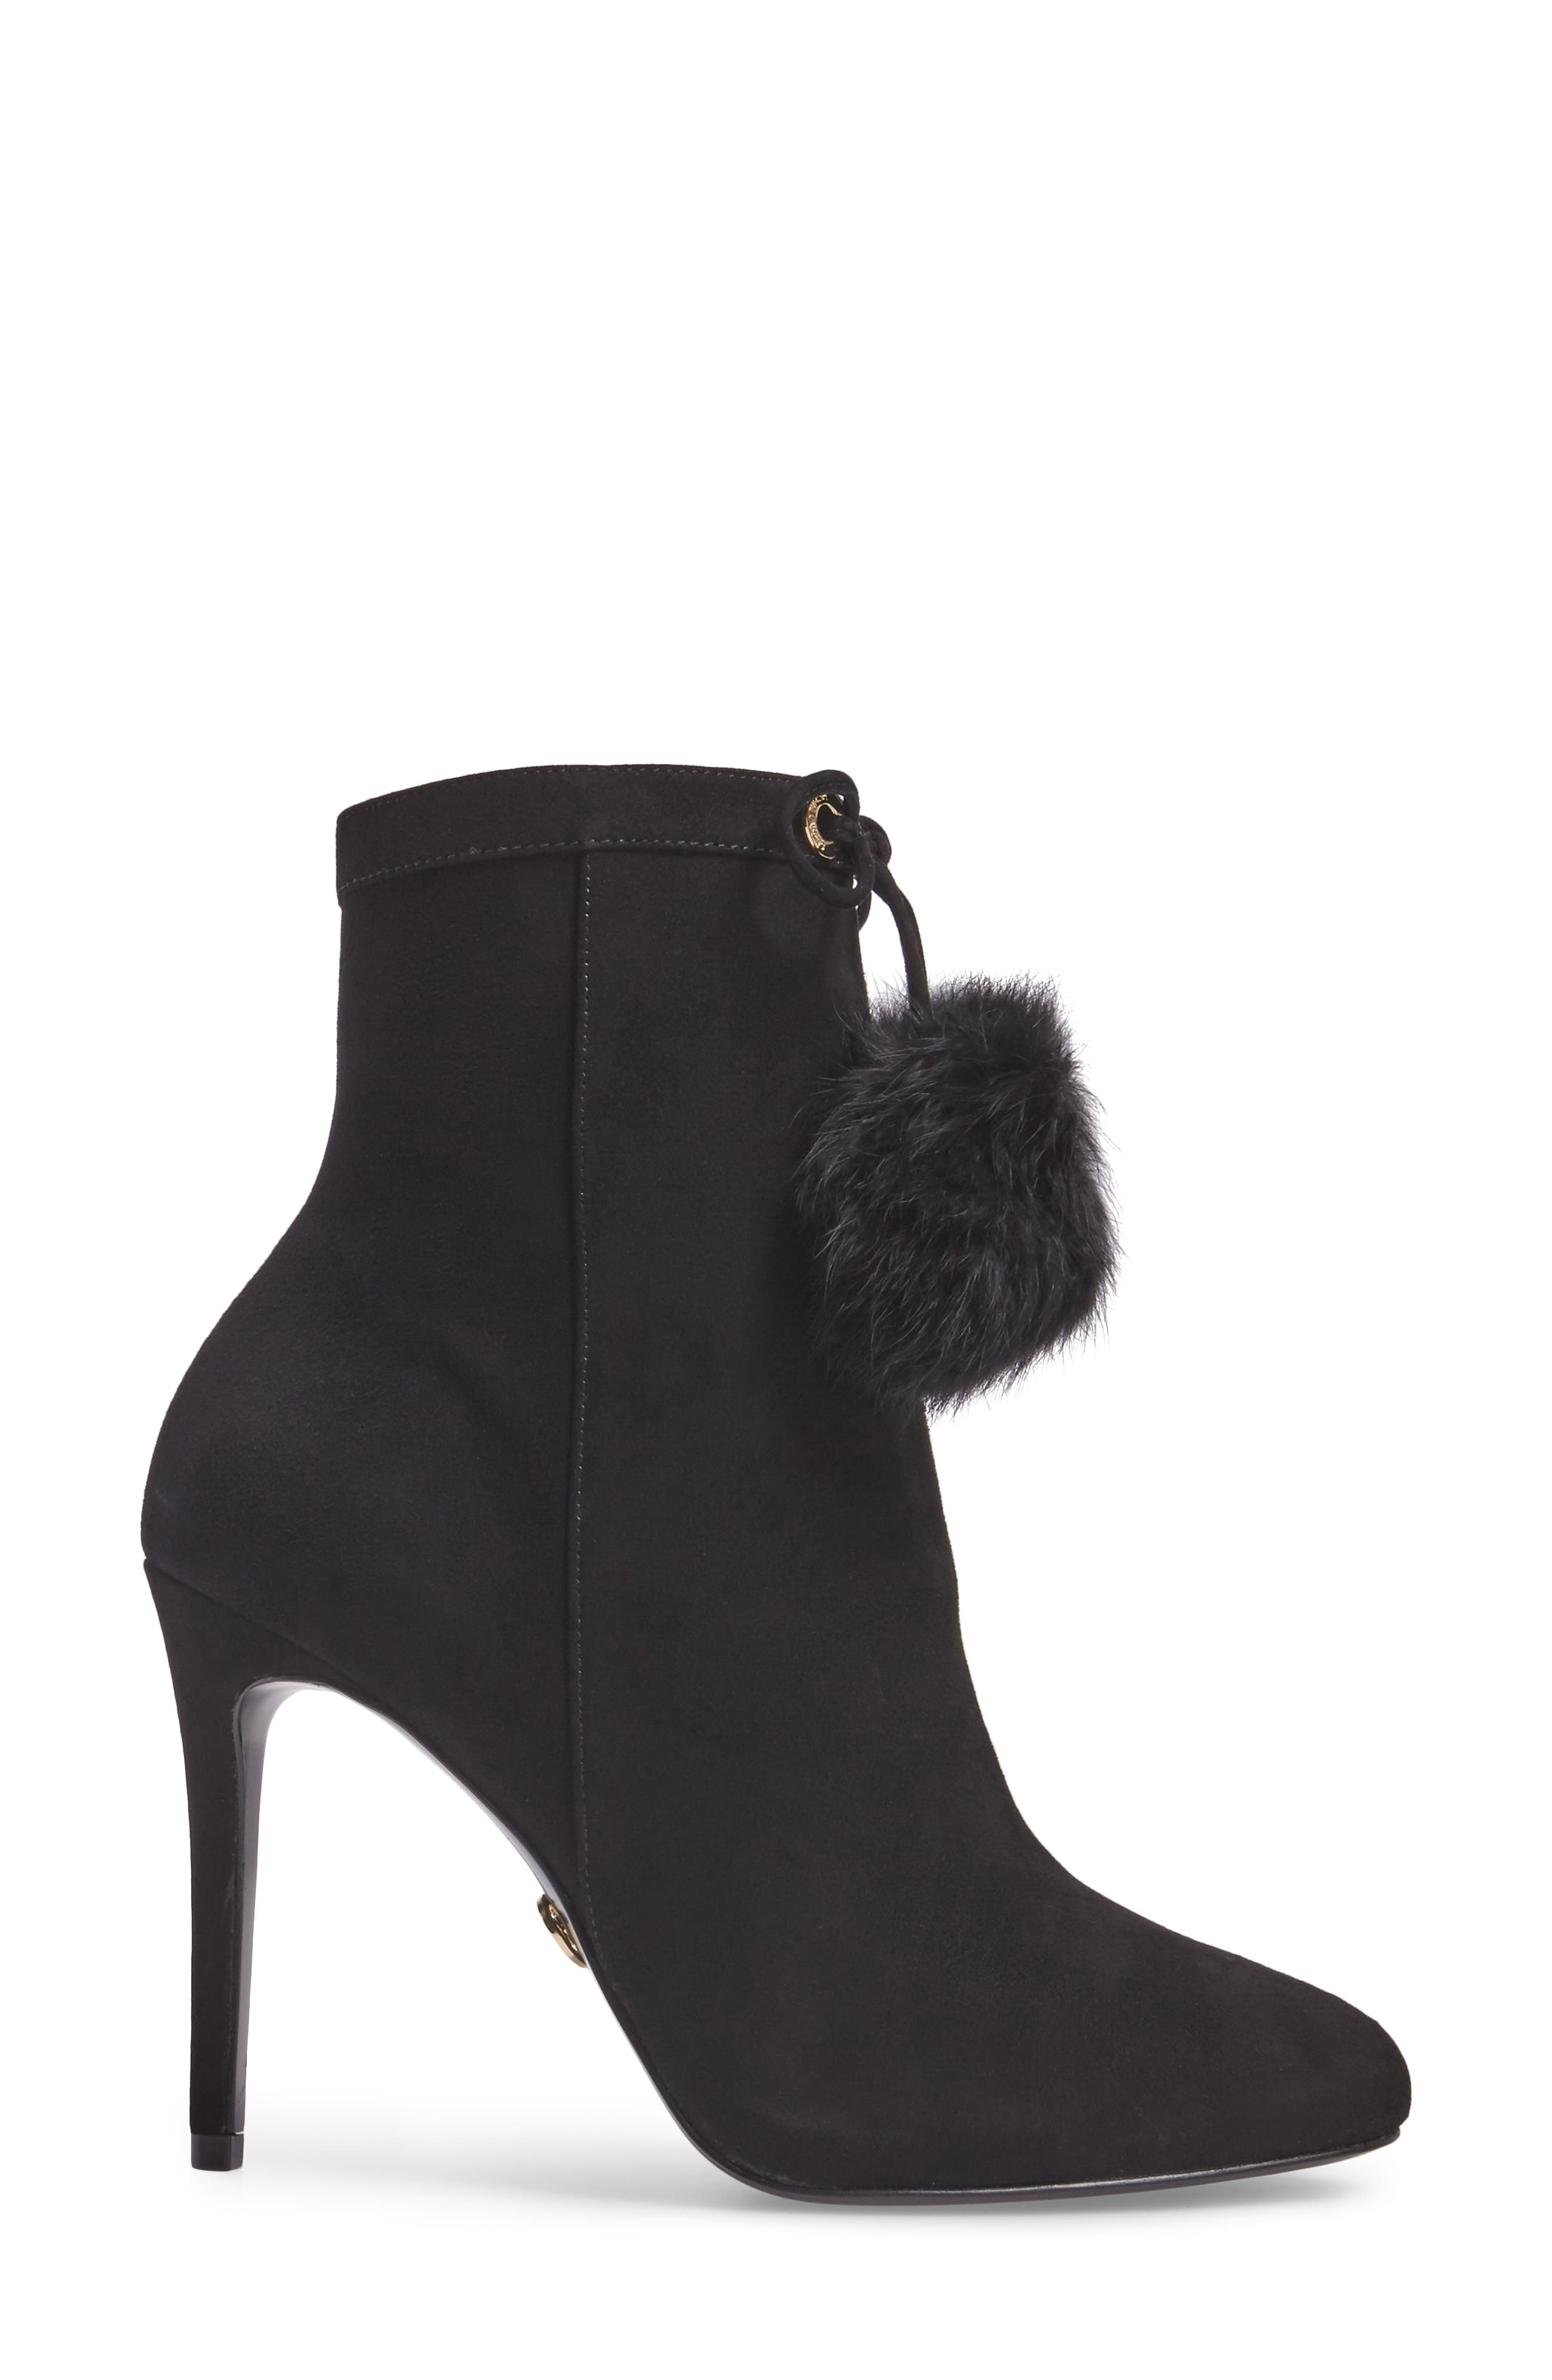 Remi Bootie with Genuine Rabbit Fur Pom,                             Alternate thumbnail 3, color,                             002